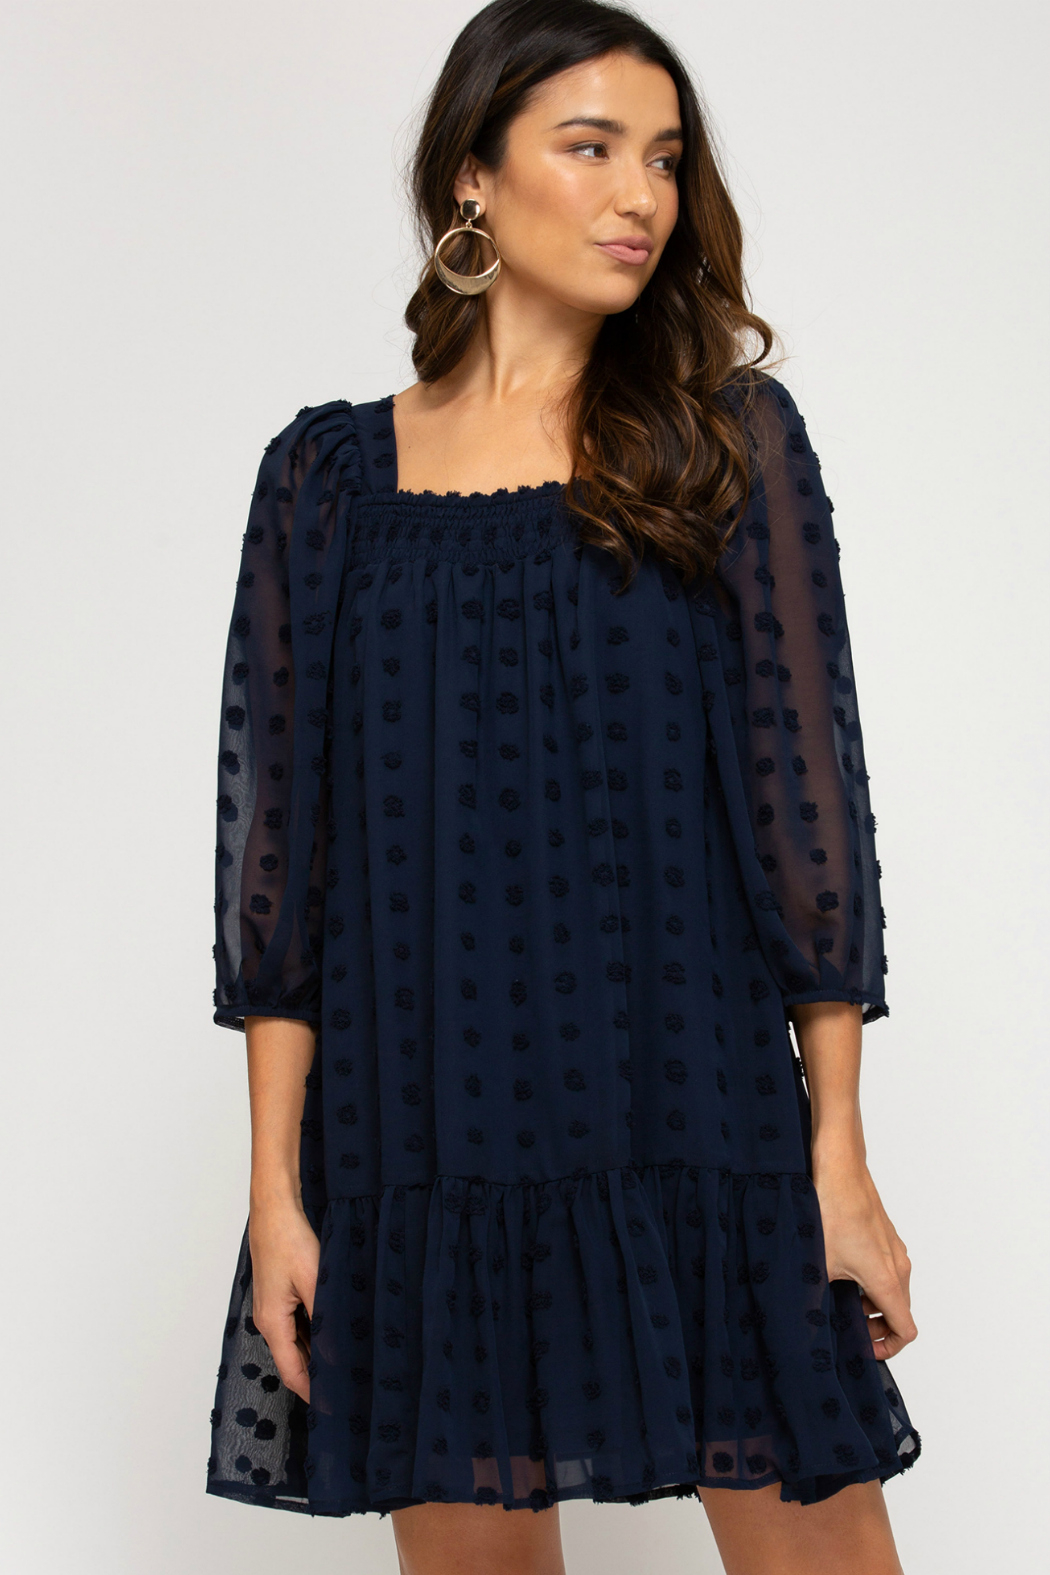 She + Sky Puff Sleeve Dress - Main Image